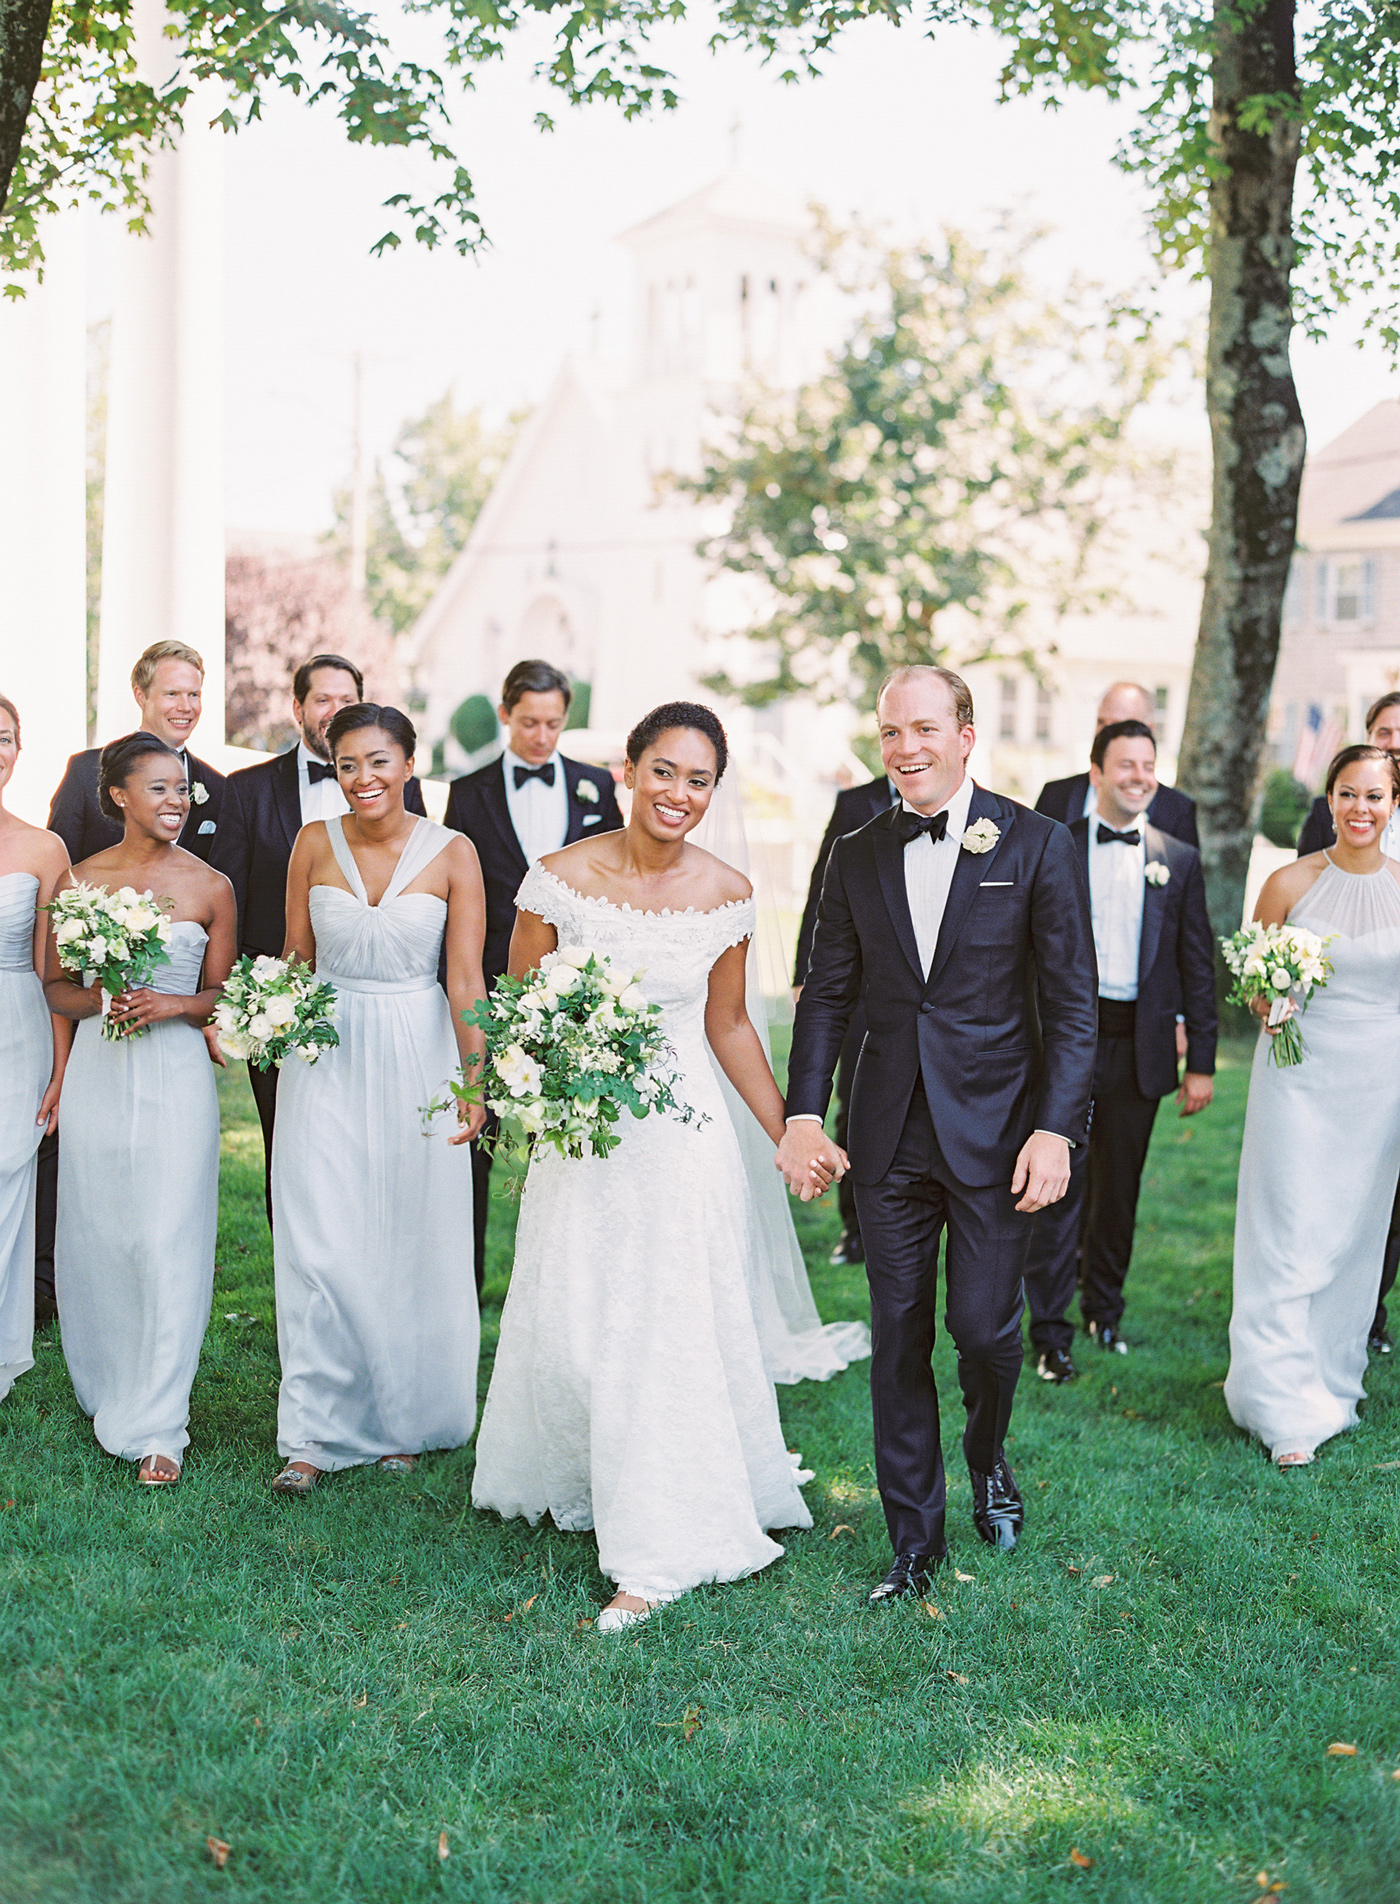 bride and groom with groomsmen wearing black tuxedos and bridesmaids wearing dove-gray chiffon gowns